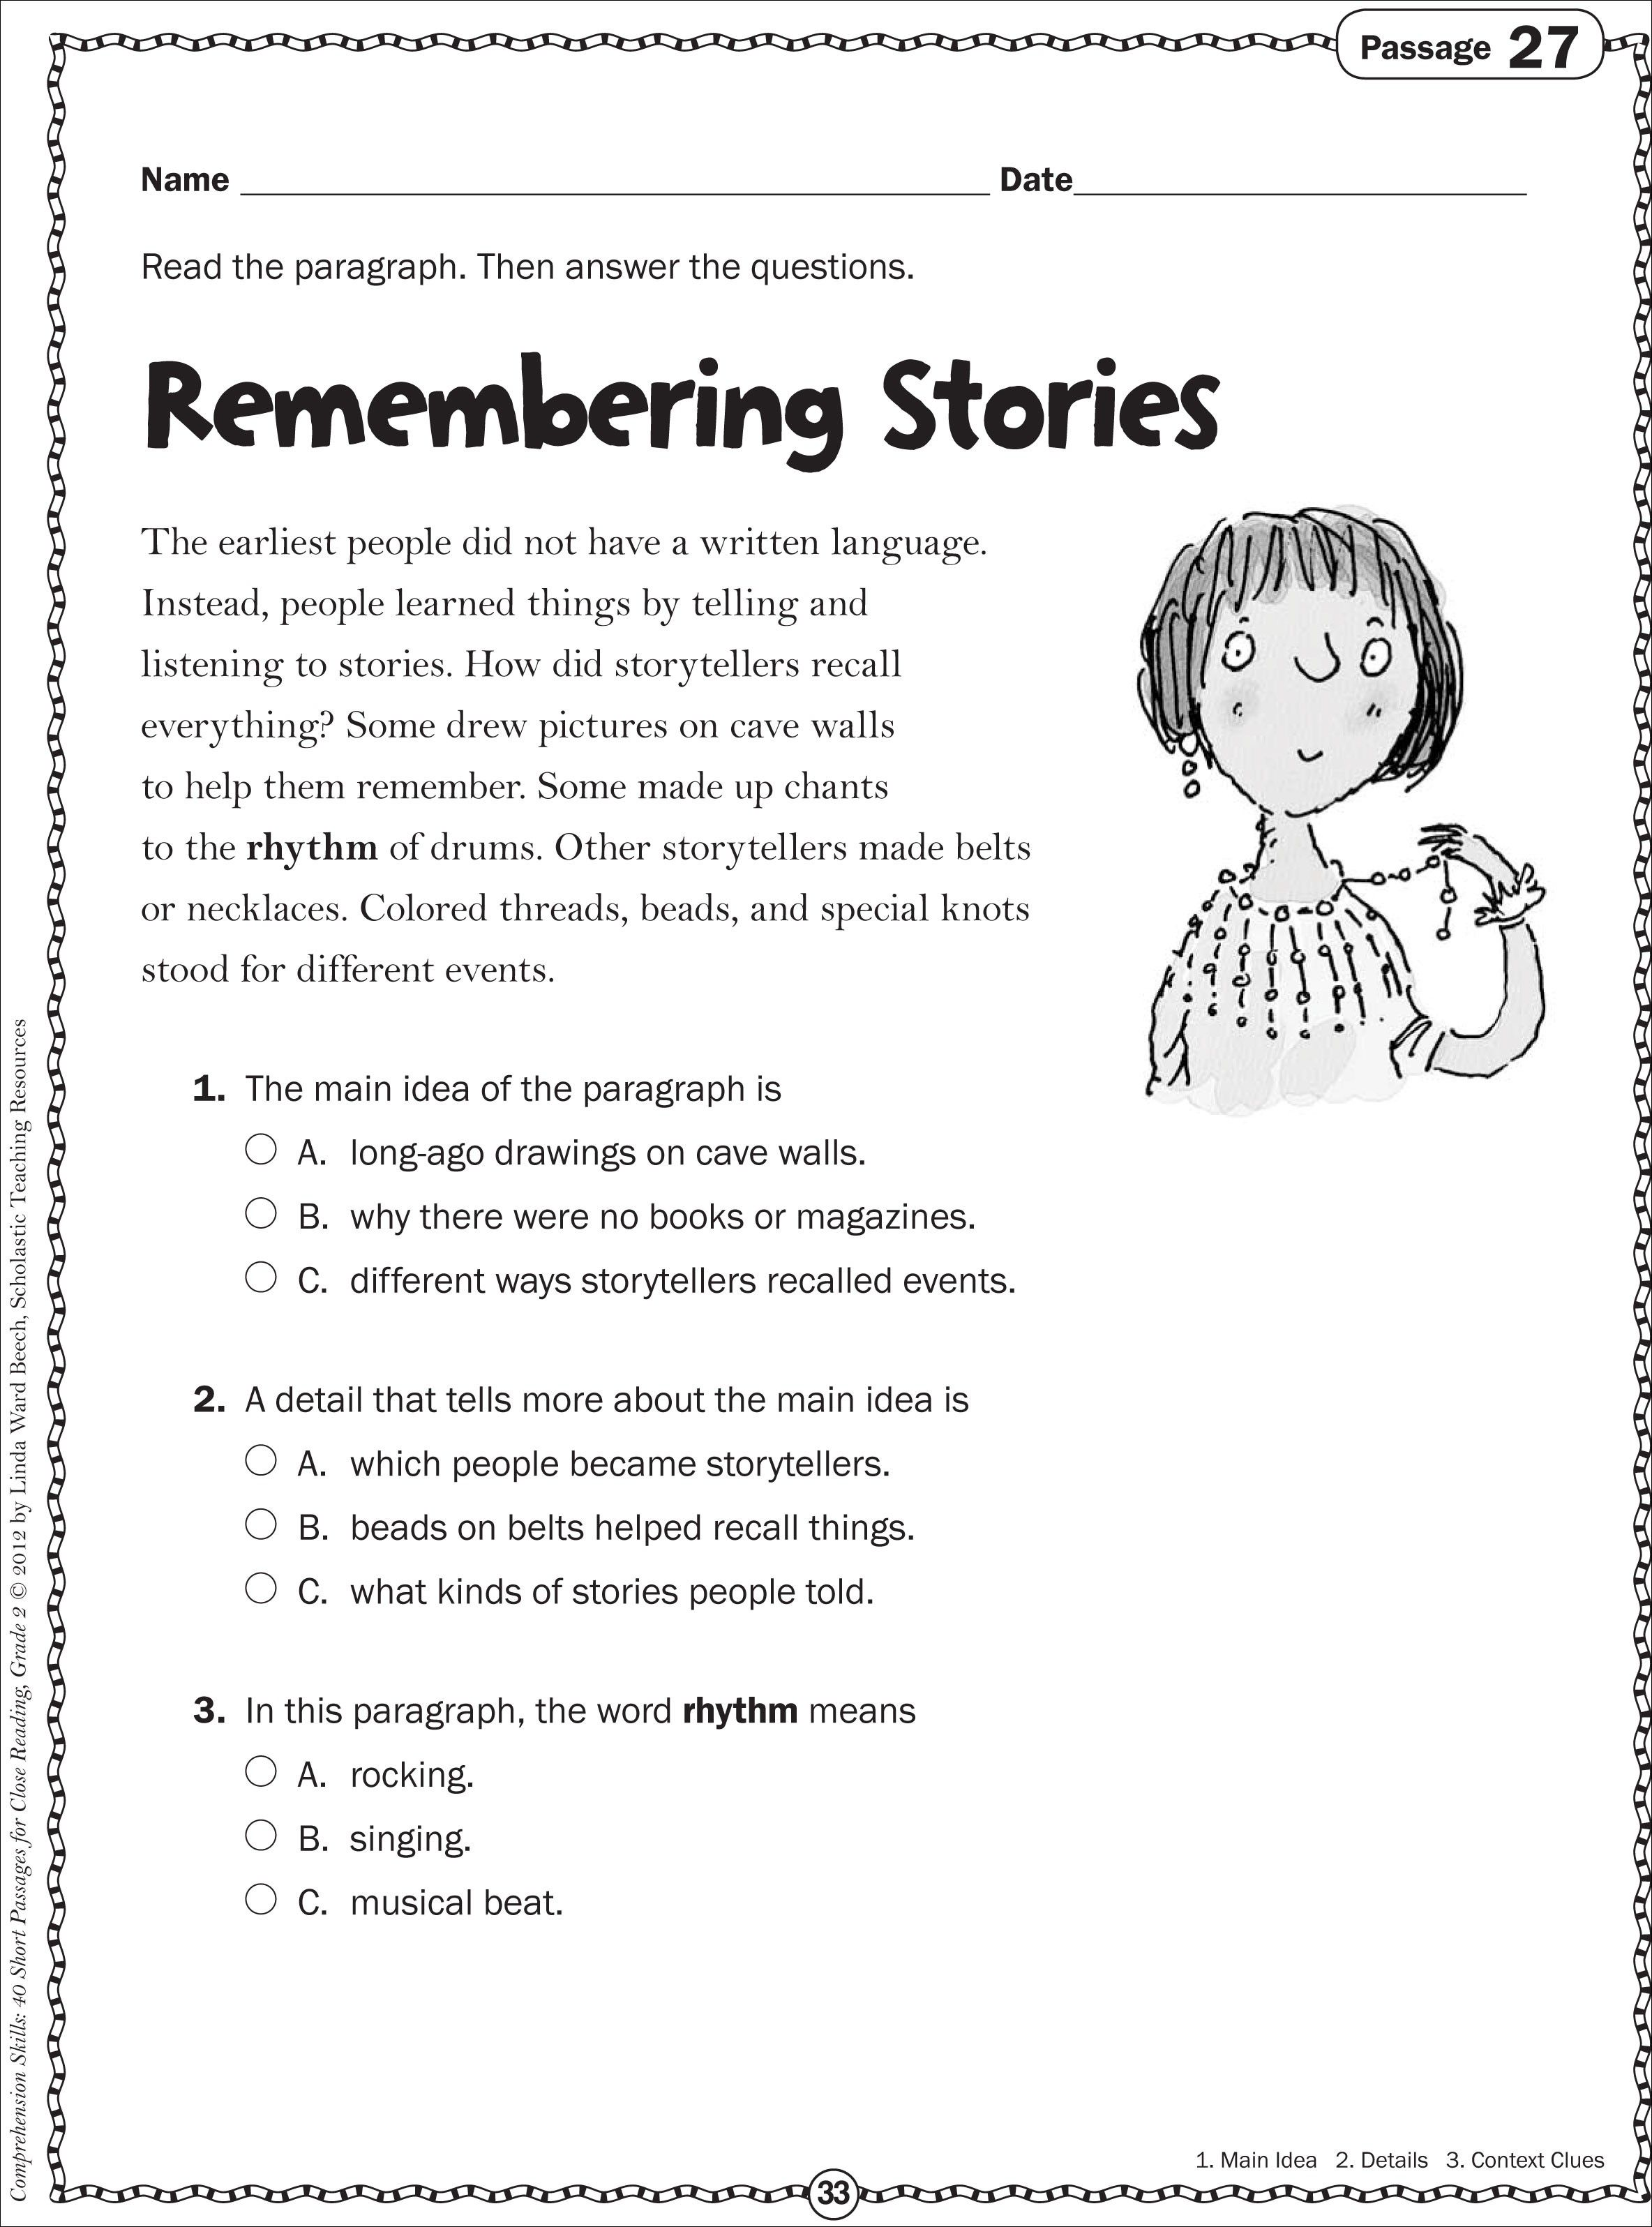 Worksheets Free 5th Grade Reading Comprehension Worksheets grade 2 reading passages memarchoapraga school pinterest memarchoapraga